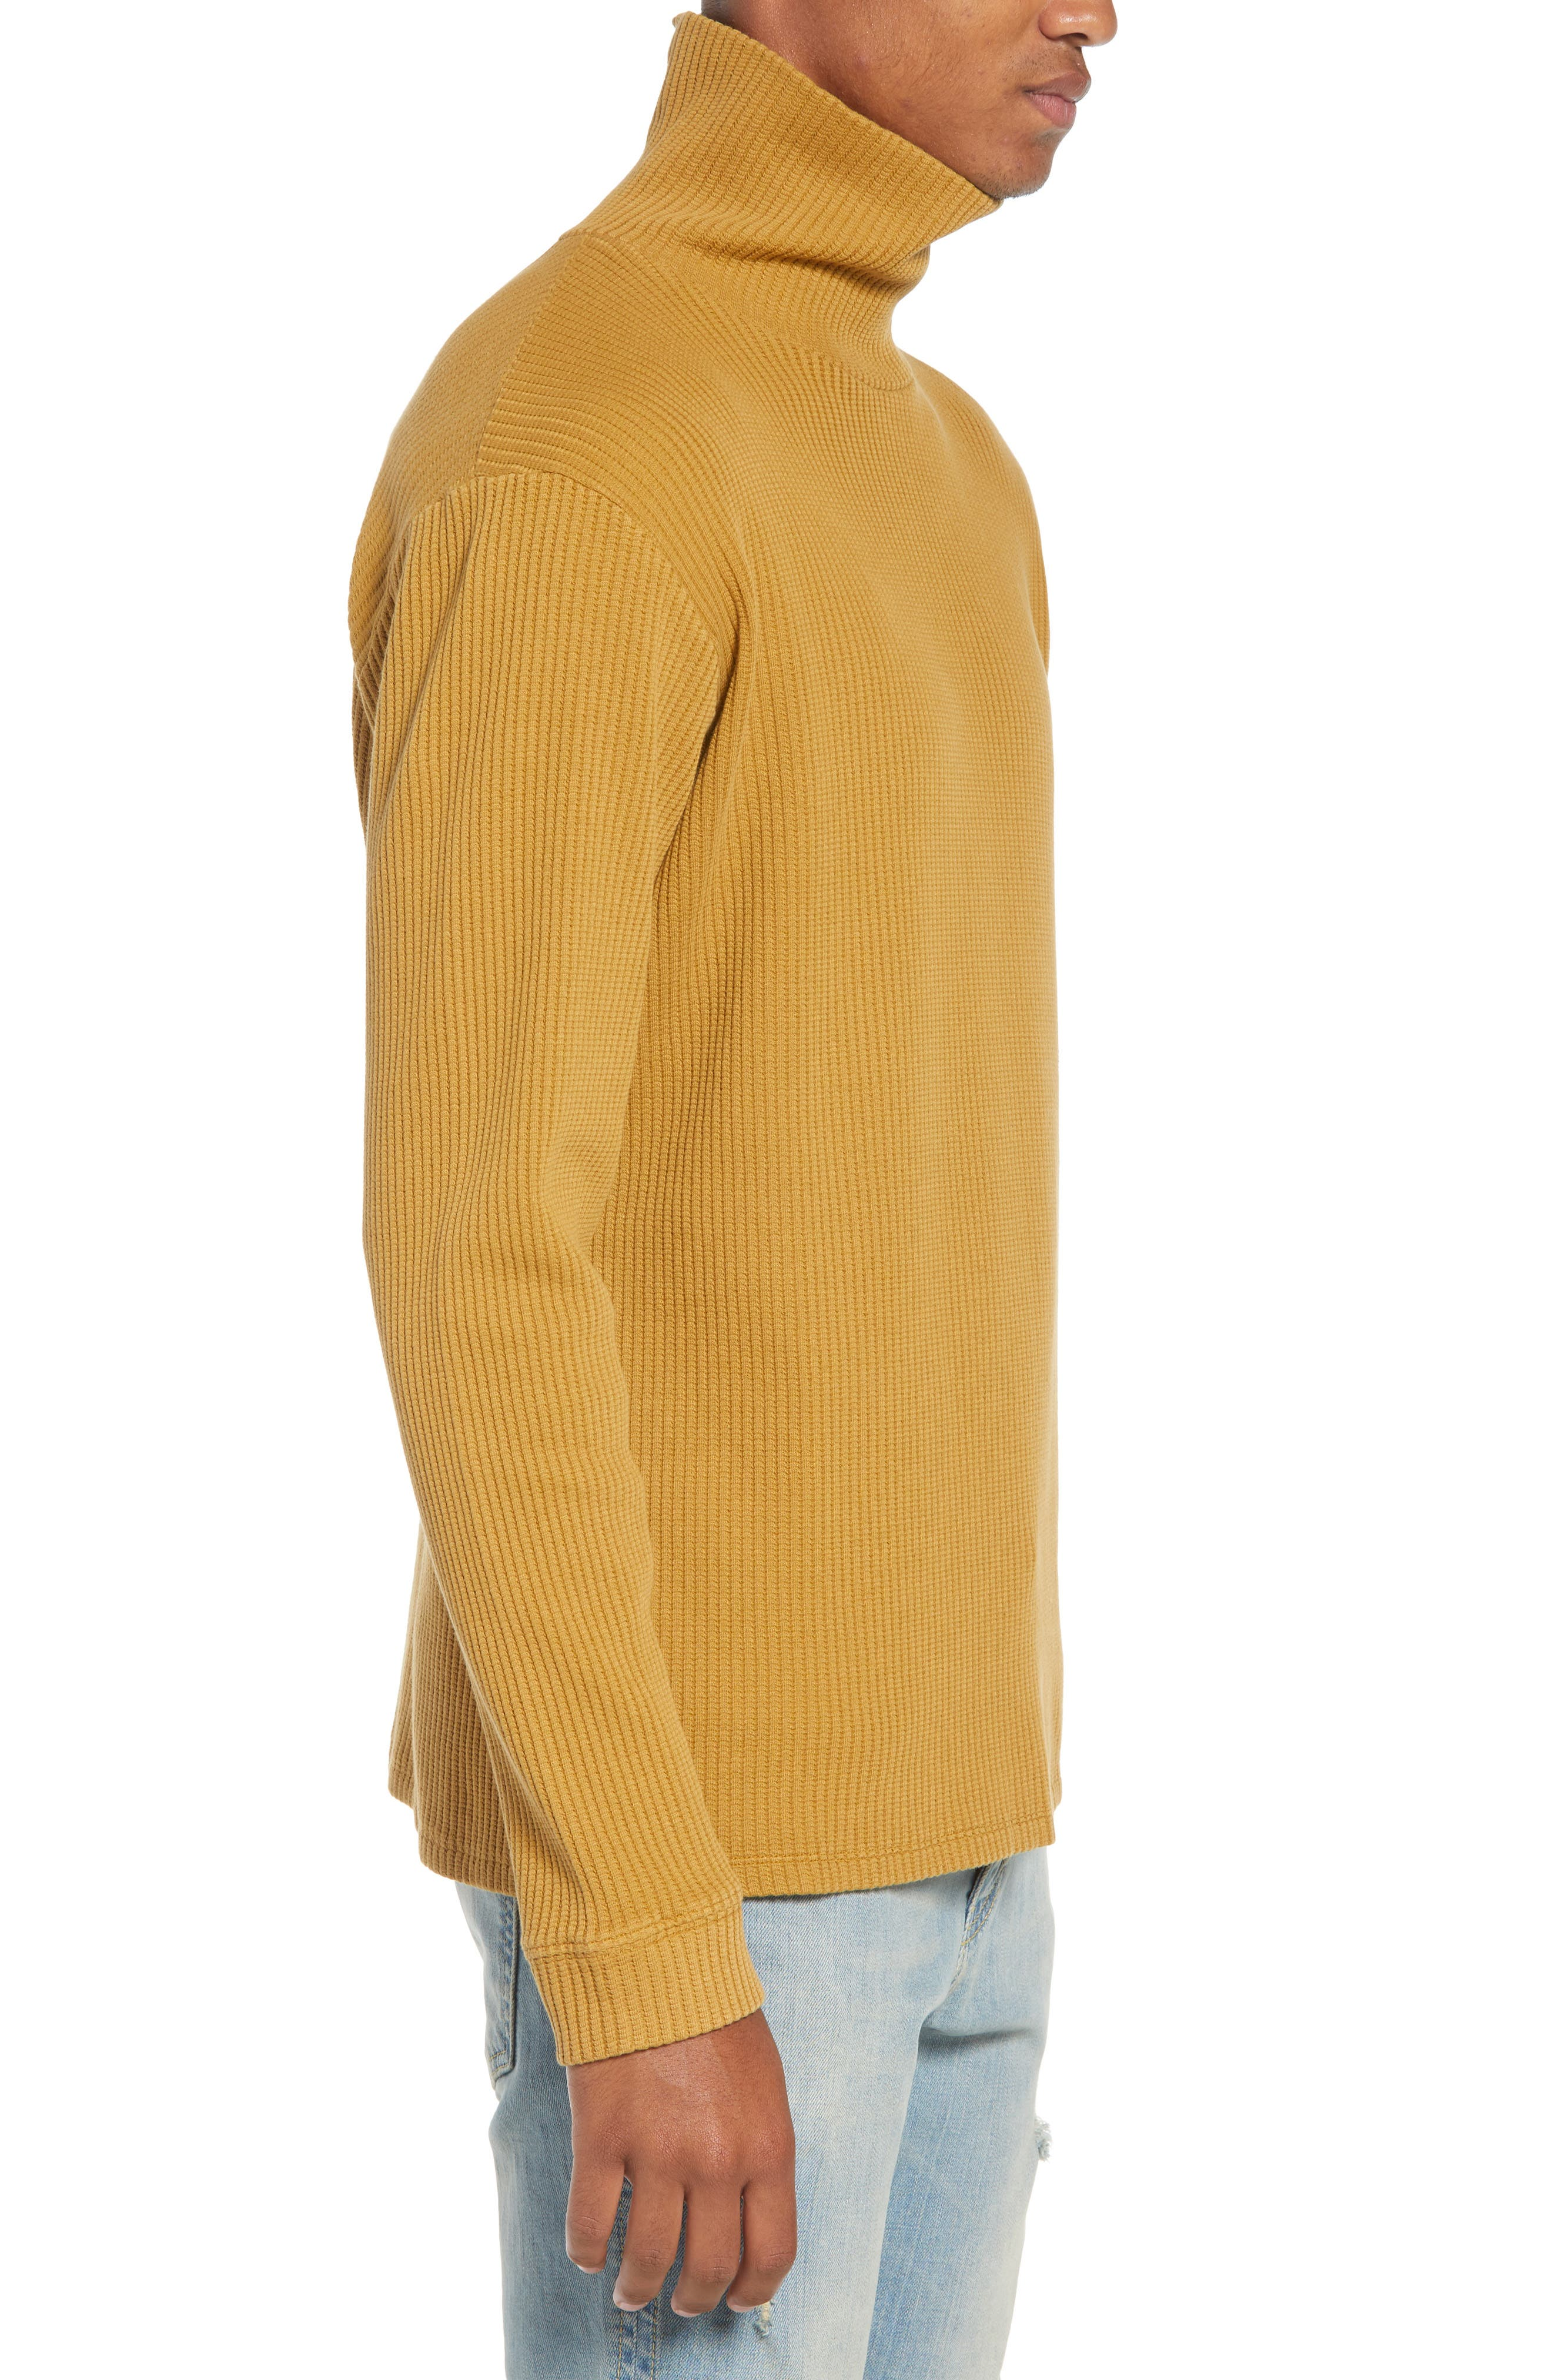 Henrik Turtleneck Sweater,                             Alternate thumbnail 3, color,                             BURNT KHAKI